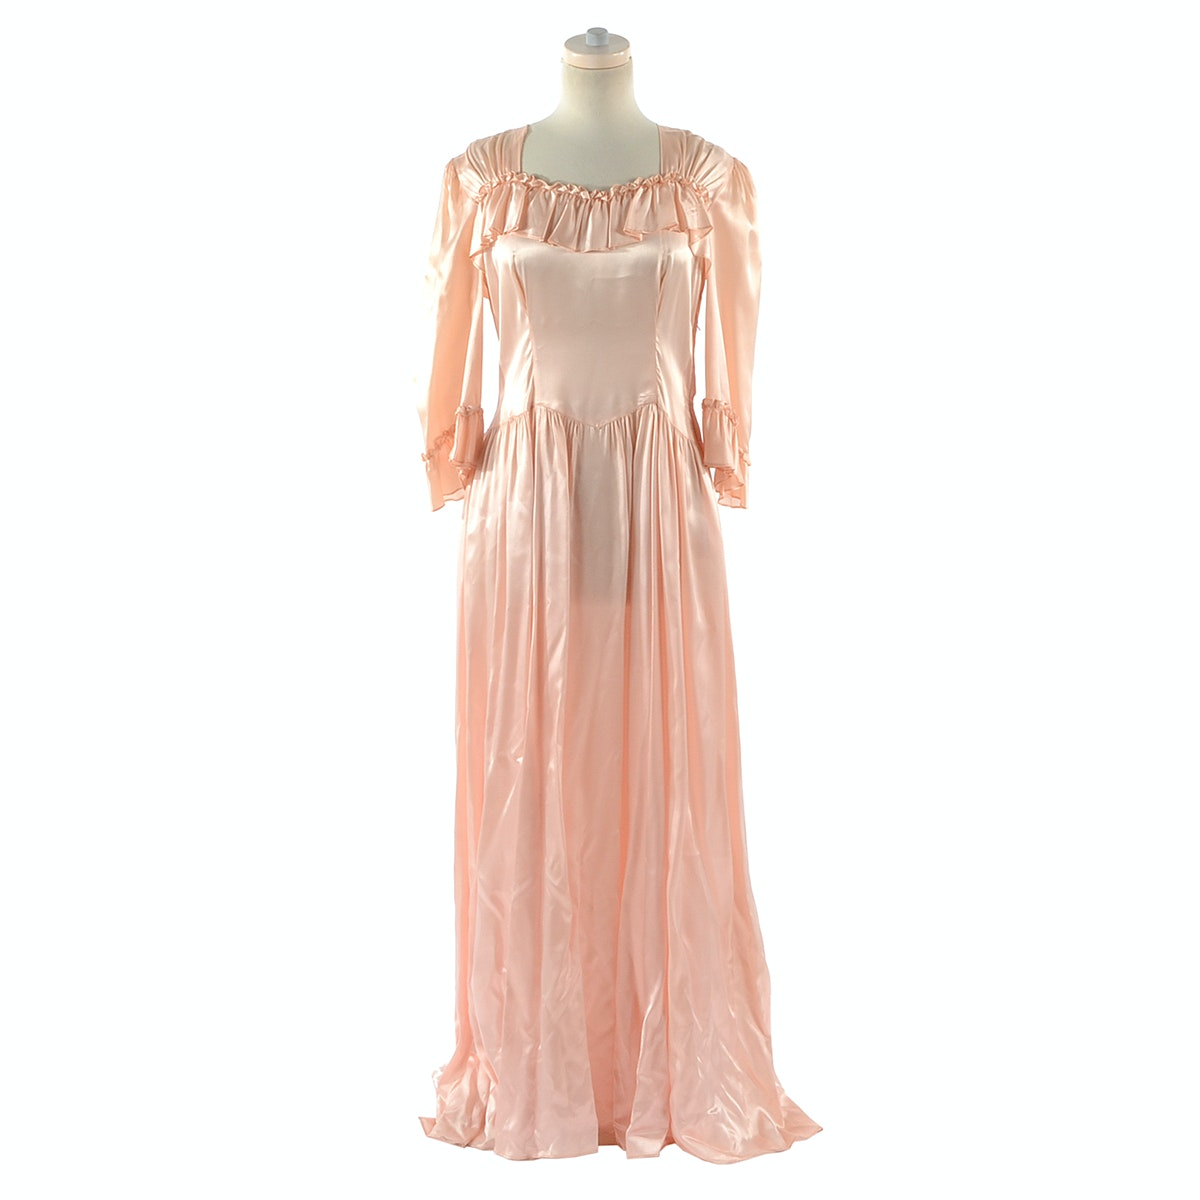 Vintage Pink Satin Evening Dress